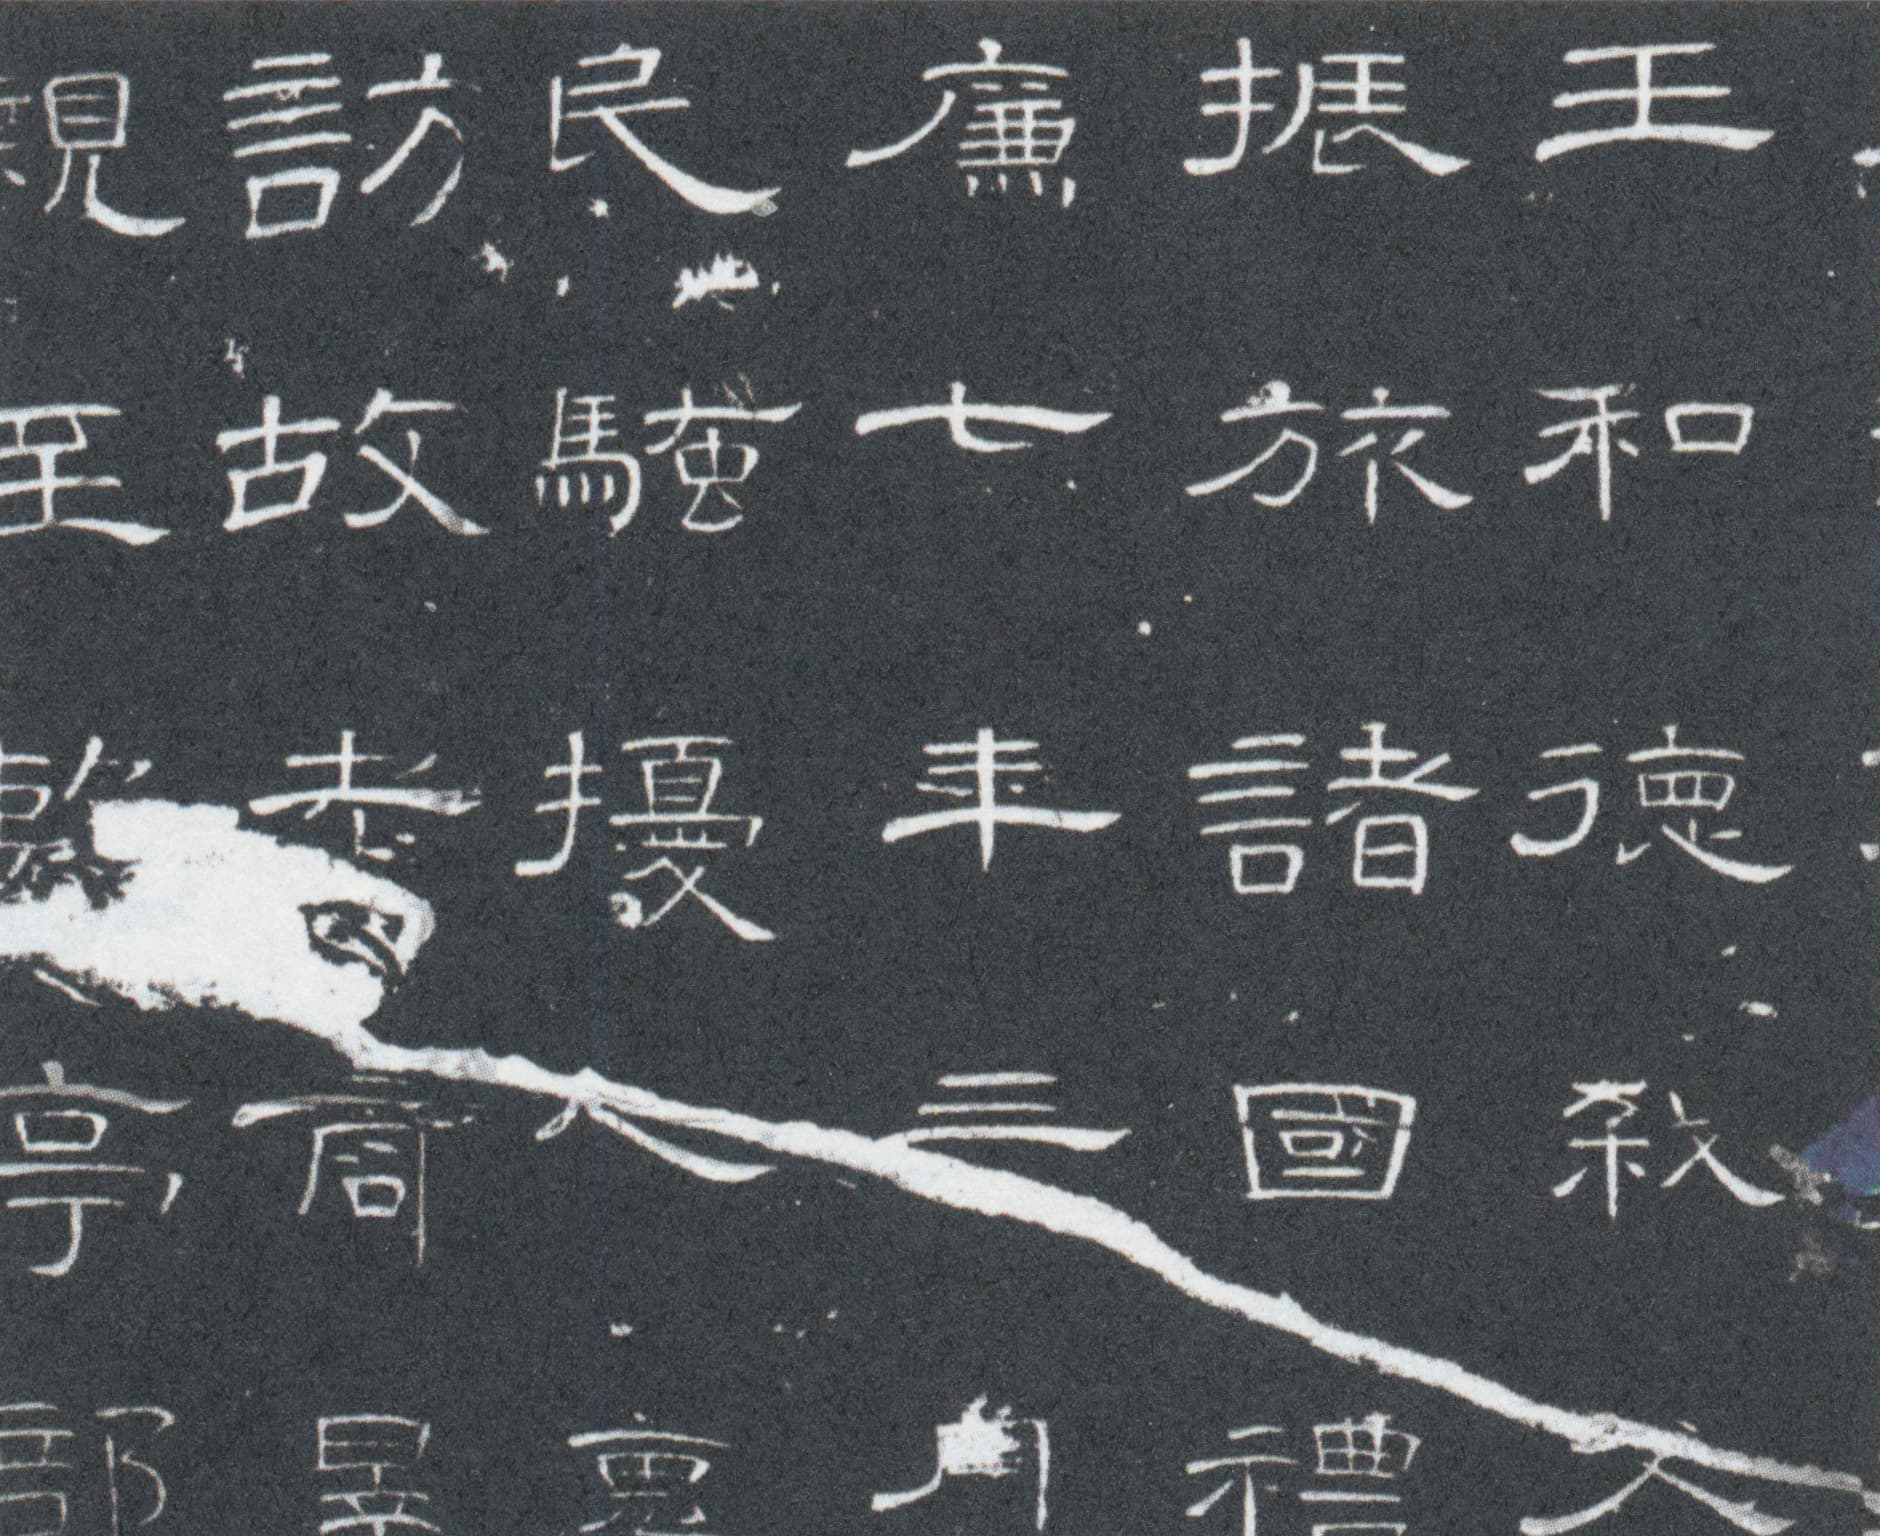 Extract from the Cao Quan Bei, or Cao Quan Stele, in Lishu calligraphic style